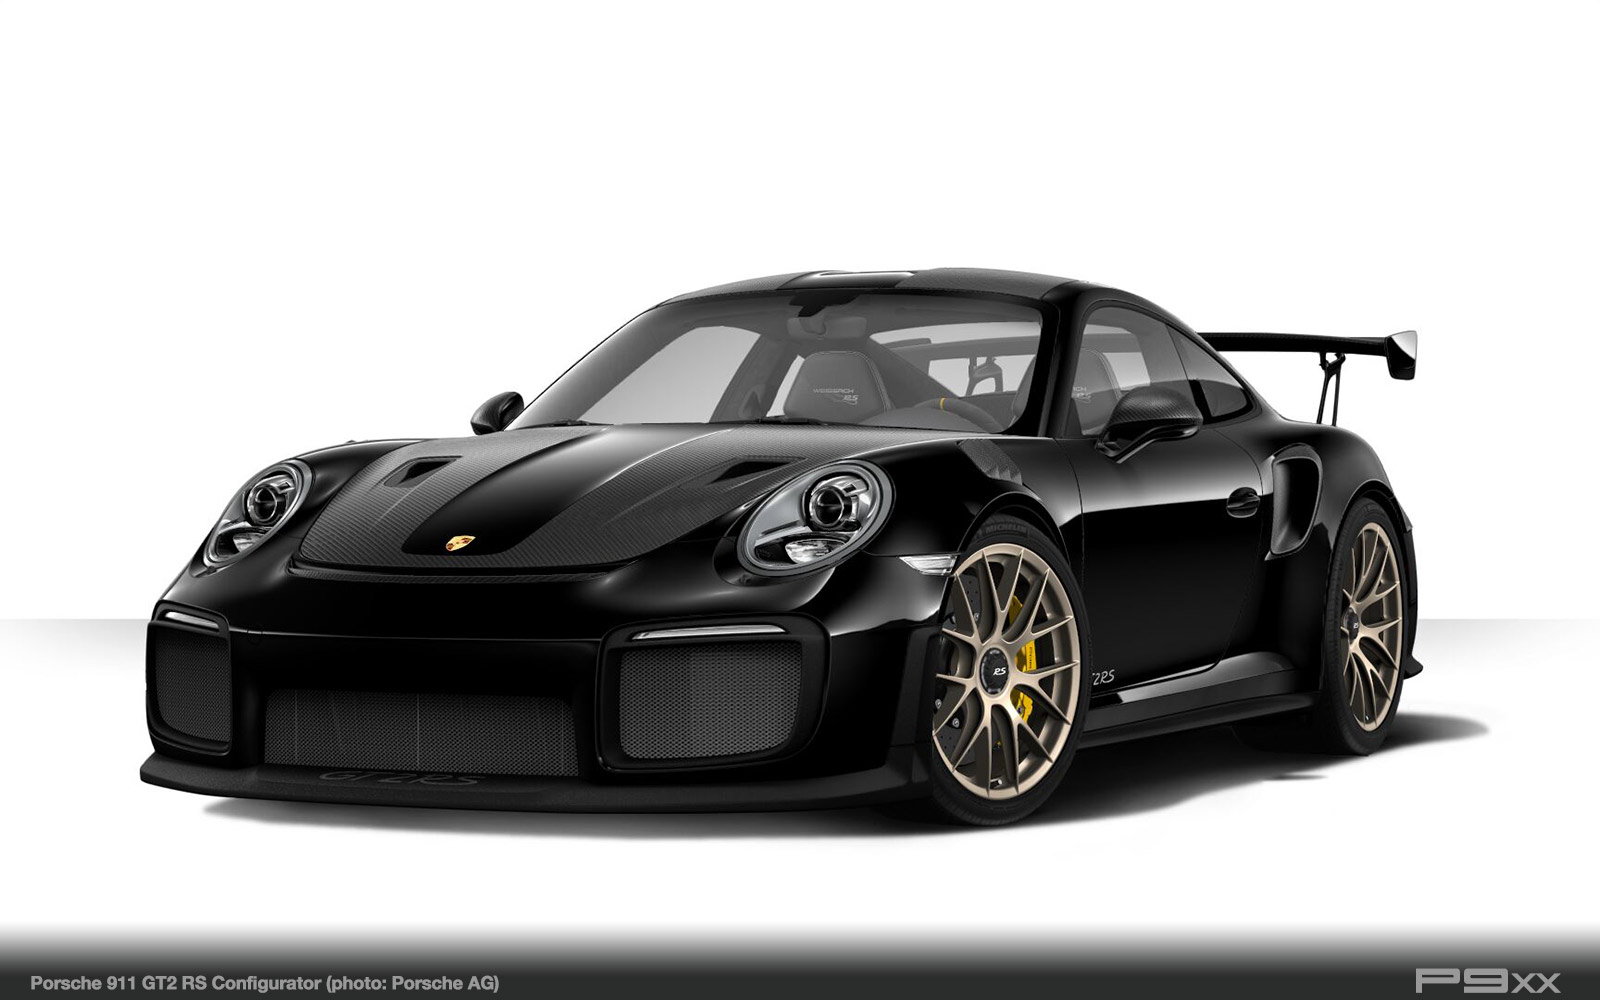 black porsche 911 gt2 rs 9912 338 p9xx. Black Bedroom Furniture Sets. Home Design Ideas